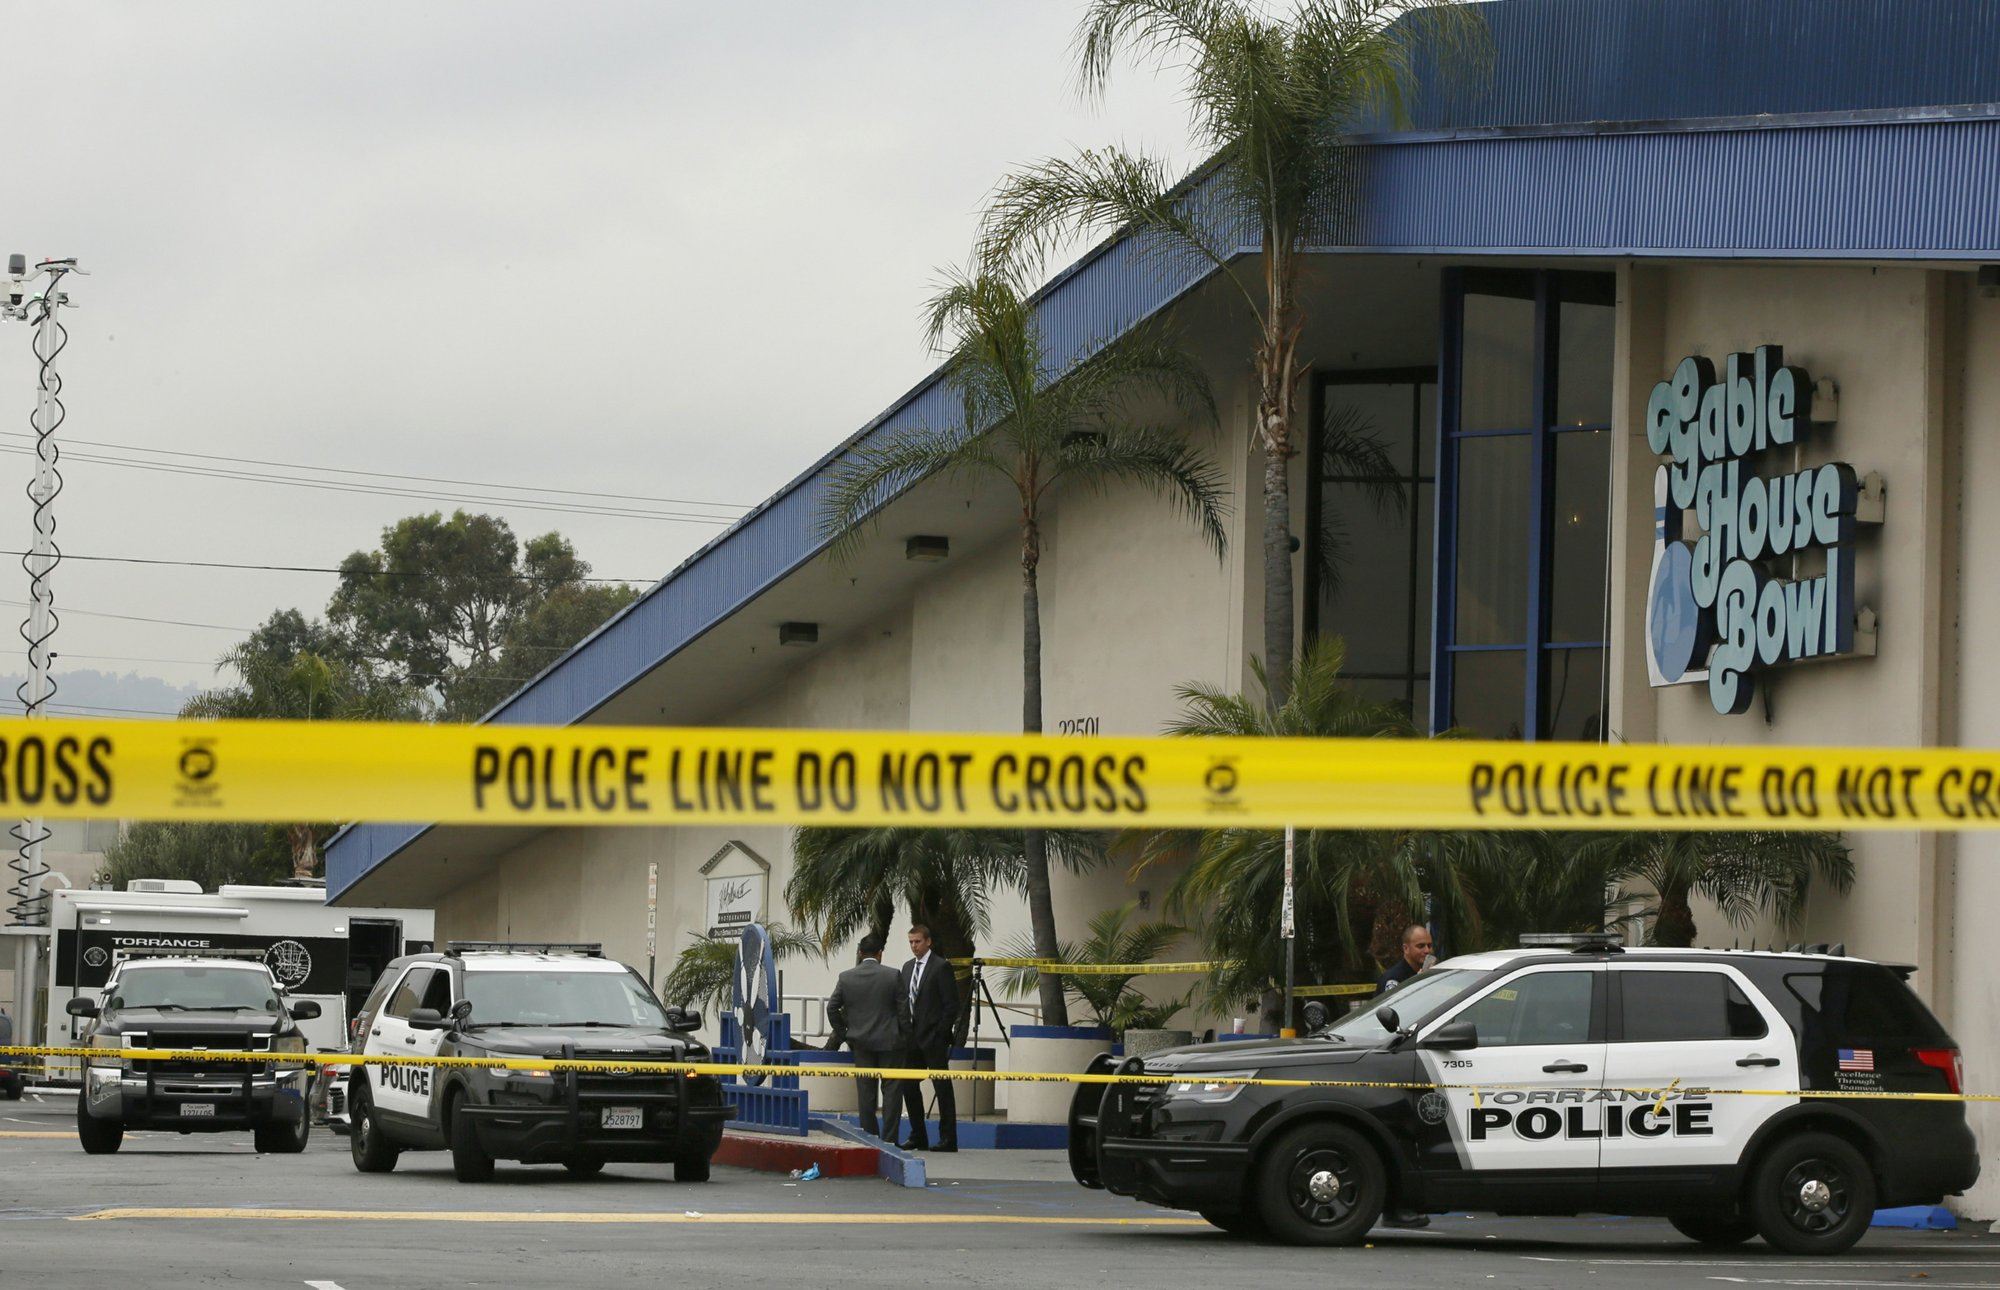 Police officers investigate a shooting incident with multiple fatalities at the Gable House Bowl in Torrance, Calif., on Saturday, Jan. 5, 2019. Photo: AP